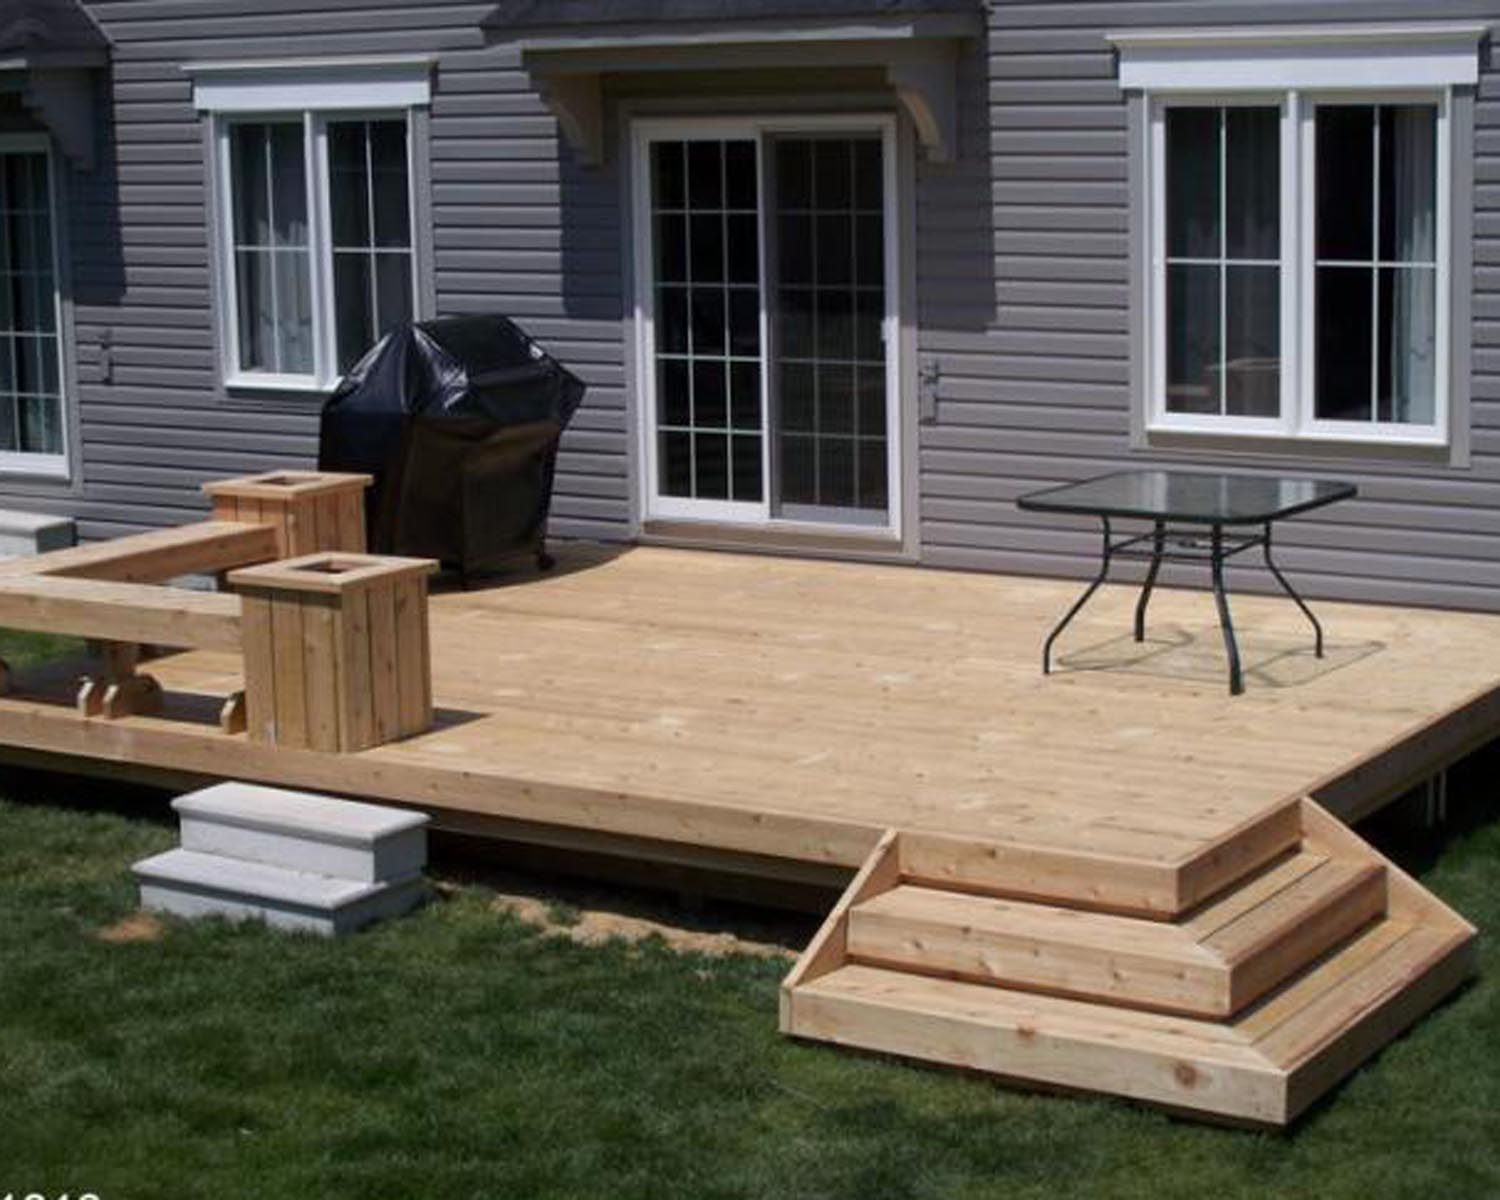 deck ideas be more when deck building simple but functional designs can